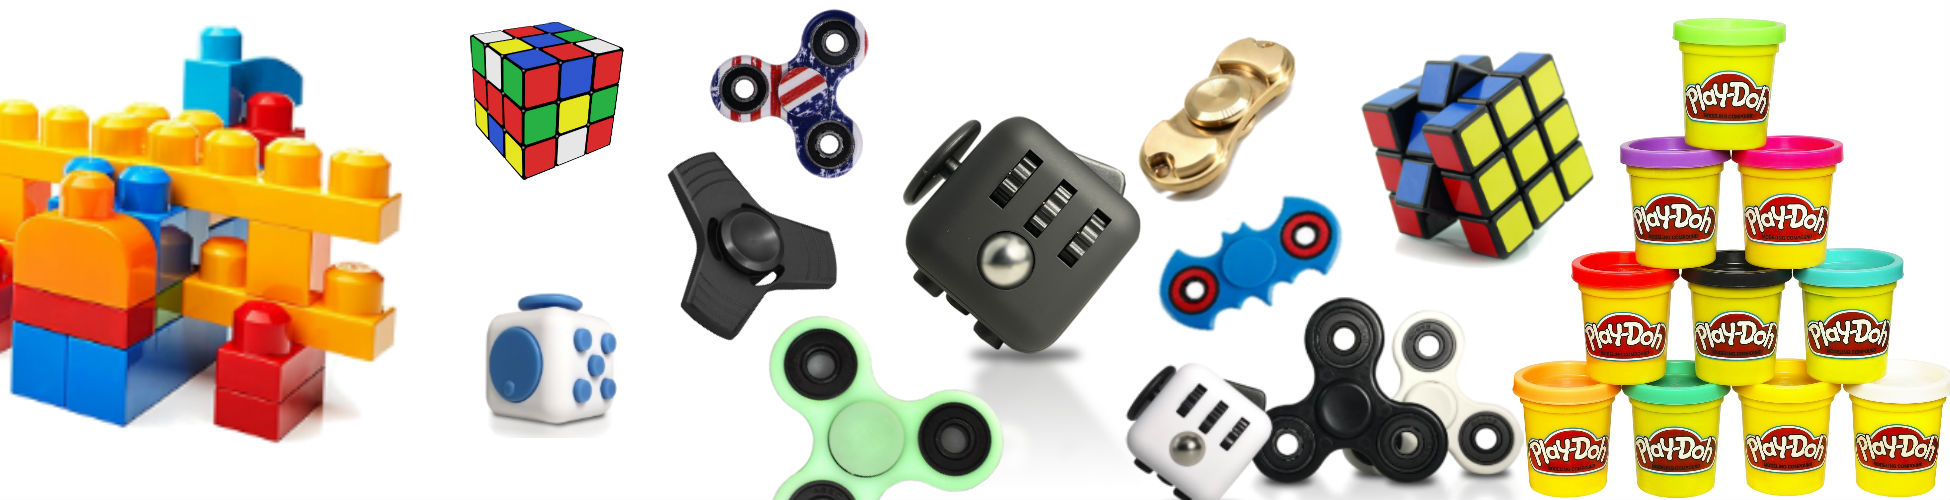 News Toysoxo Wholesale And Retail Toys Games Fidget Spinners Minimalis Tri Bar Handspinner Spinner Fun New The Ultimate Stress Relief Toy Of 2017